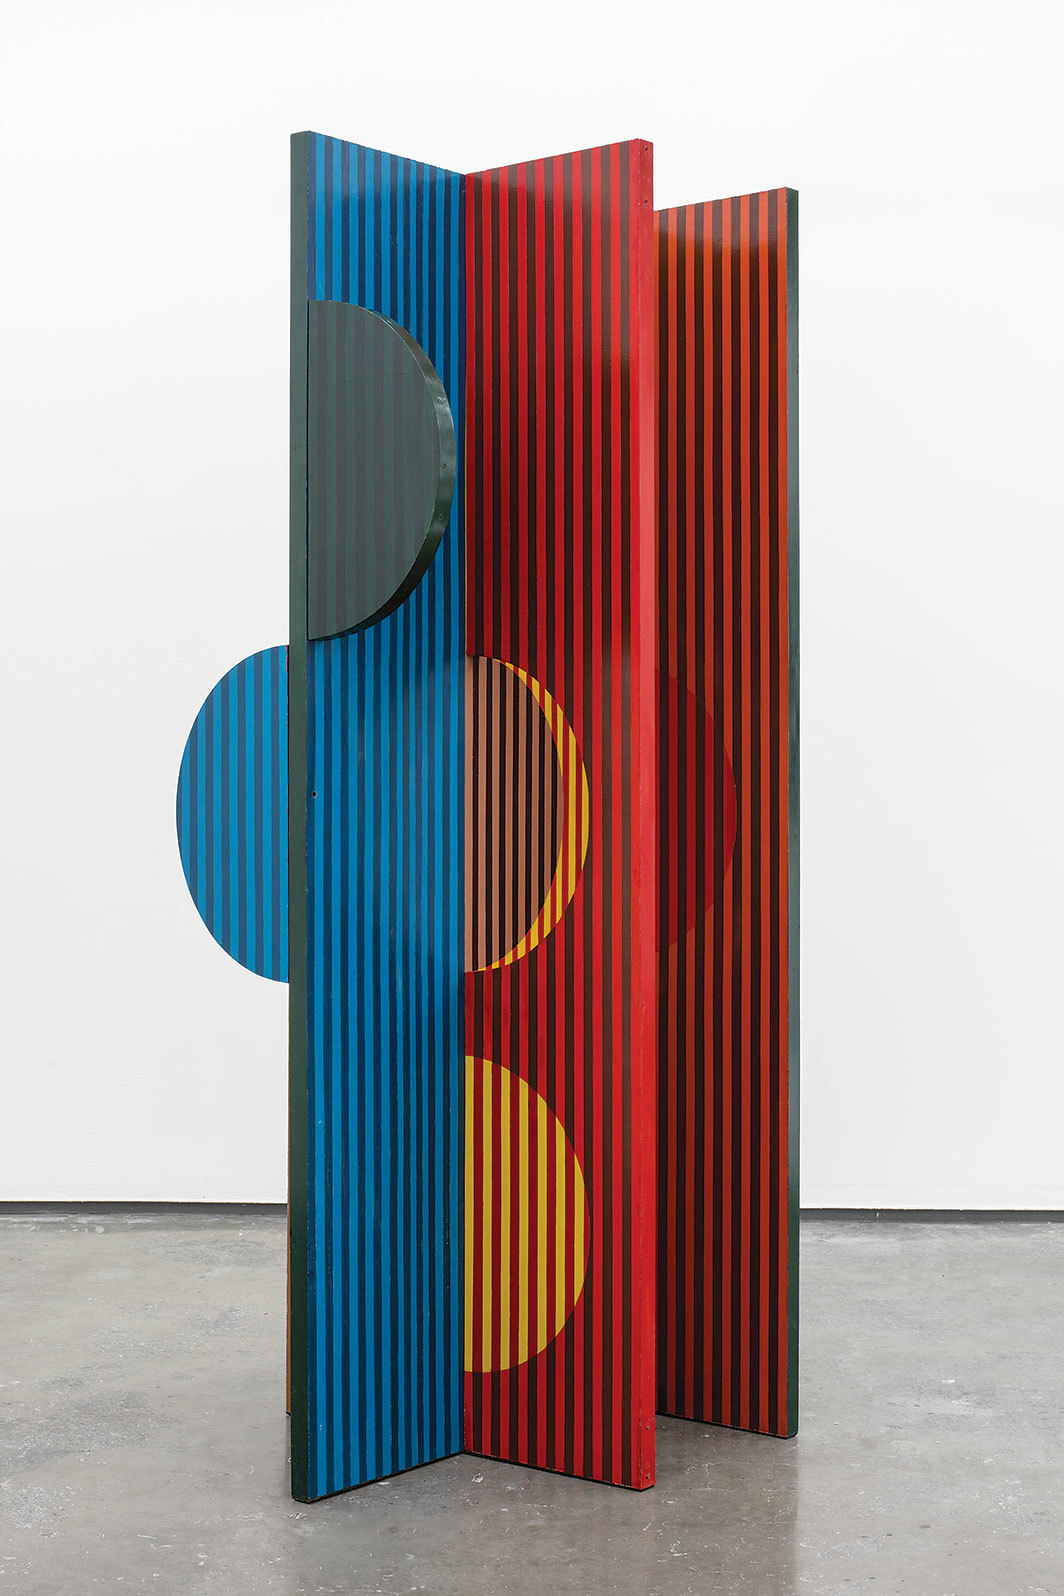 "Helen Escobedo, Eclipse, 1968, lacquered wood, 79 1⁄8 × 29 7⁄8 × 28 3⁄4""."